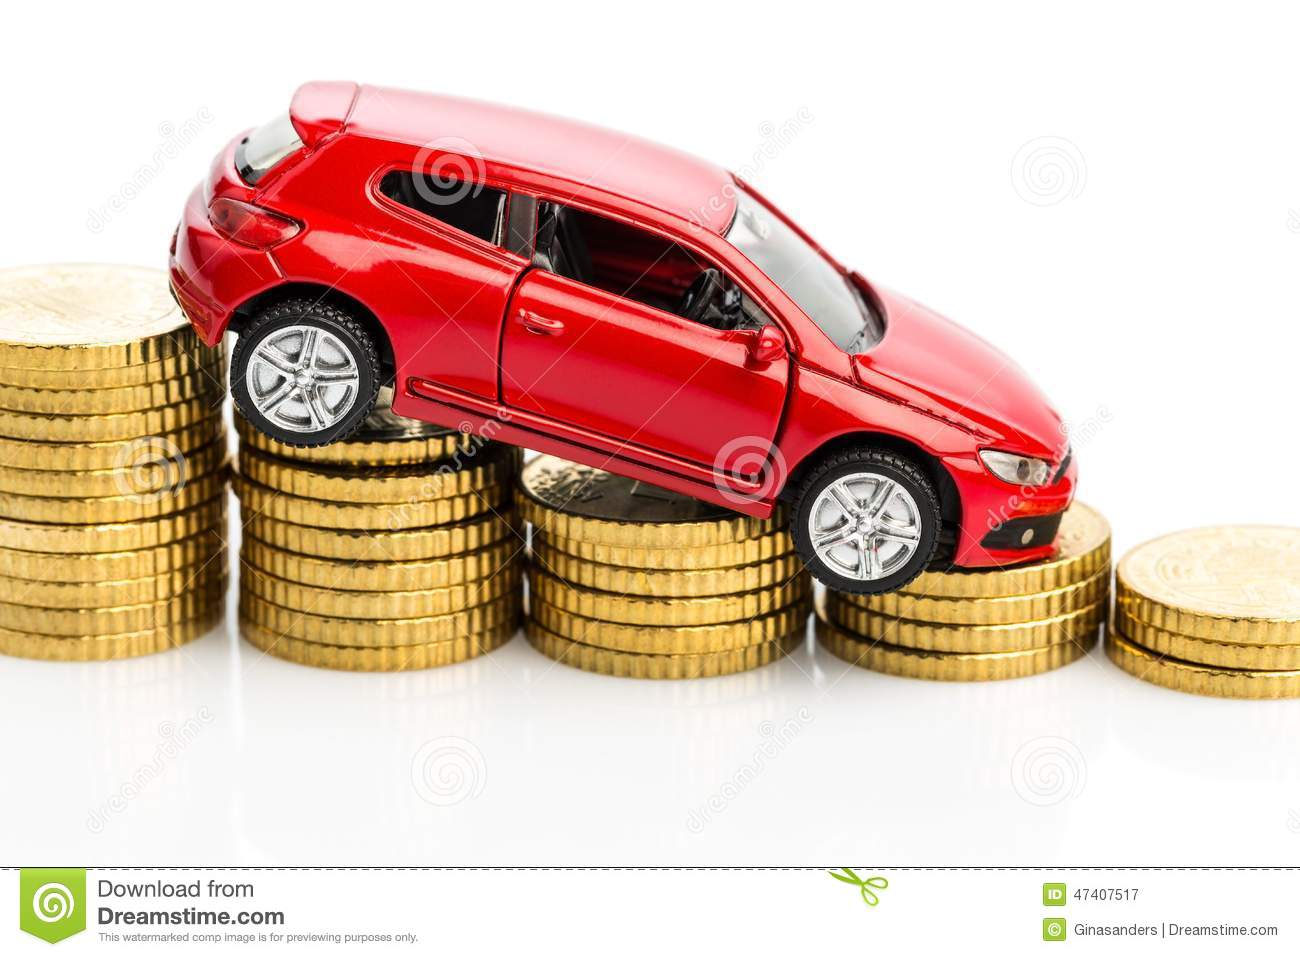 Declining profits in the car trade